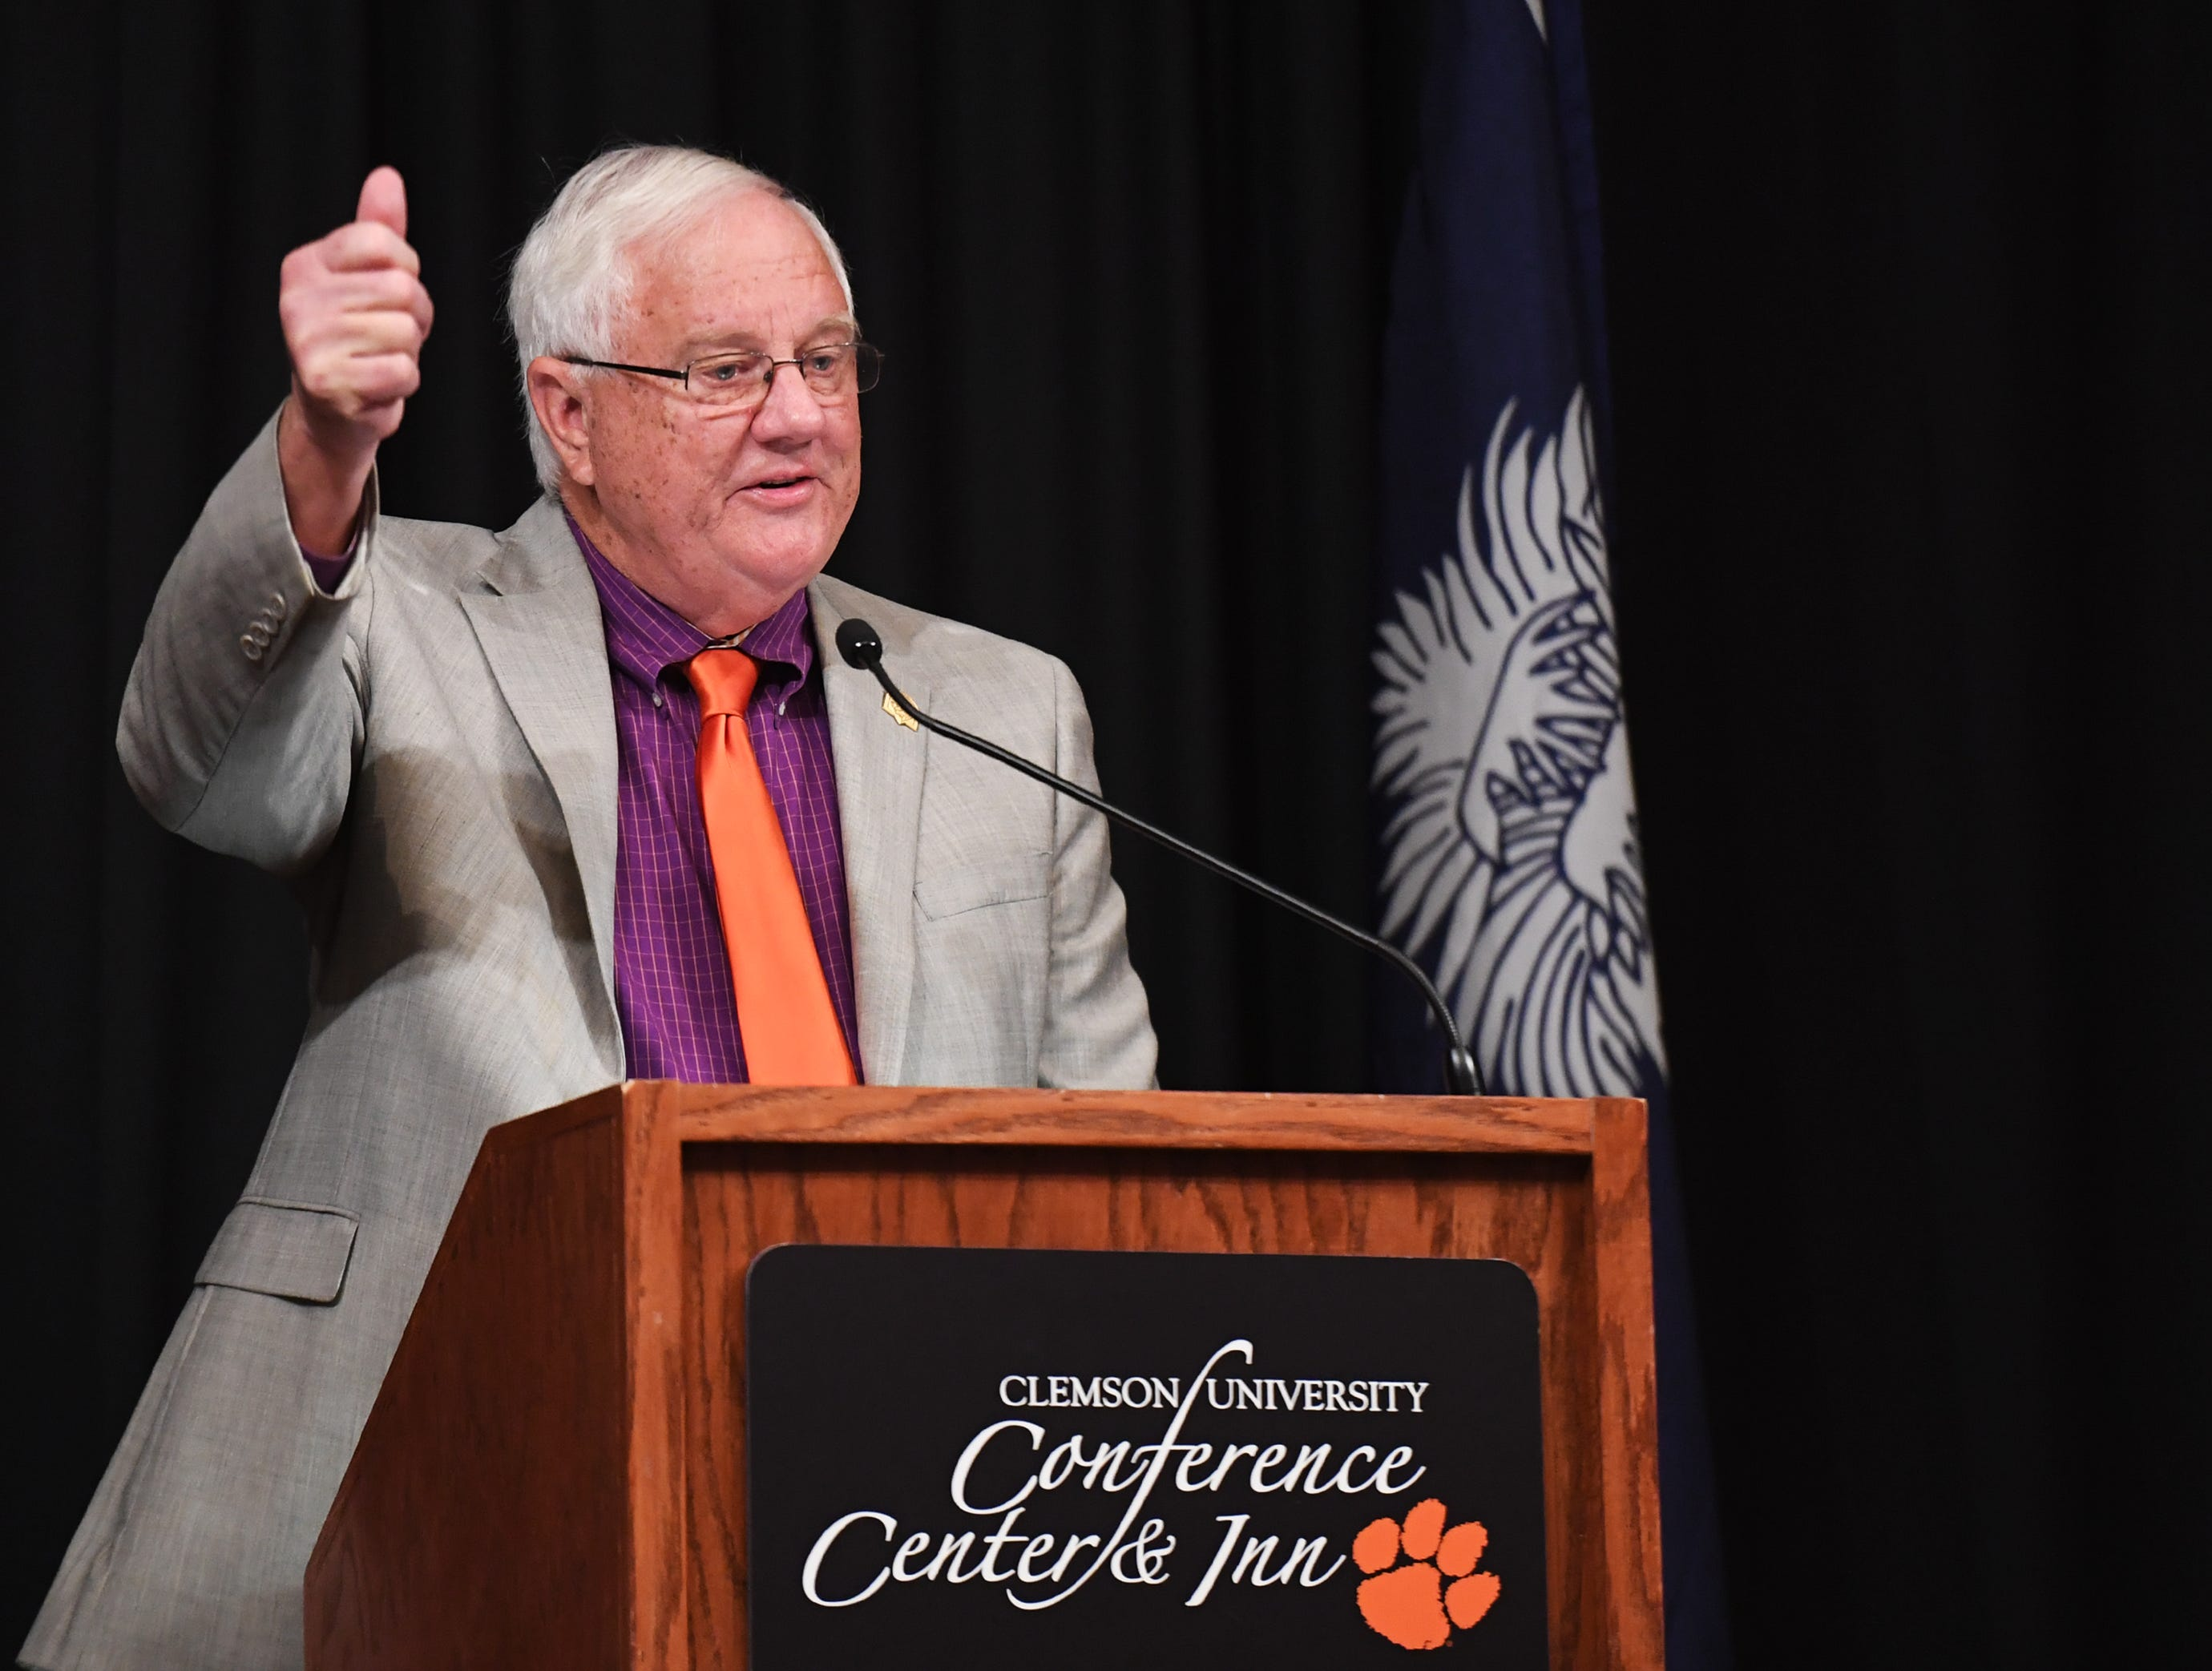 City of Clemson Mayor J.C. Cook speaks during of the State of Clemson event held at the Madren Center Tuesday, Feb. 19, 2019.